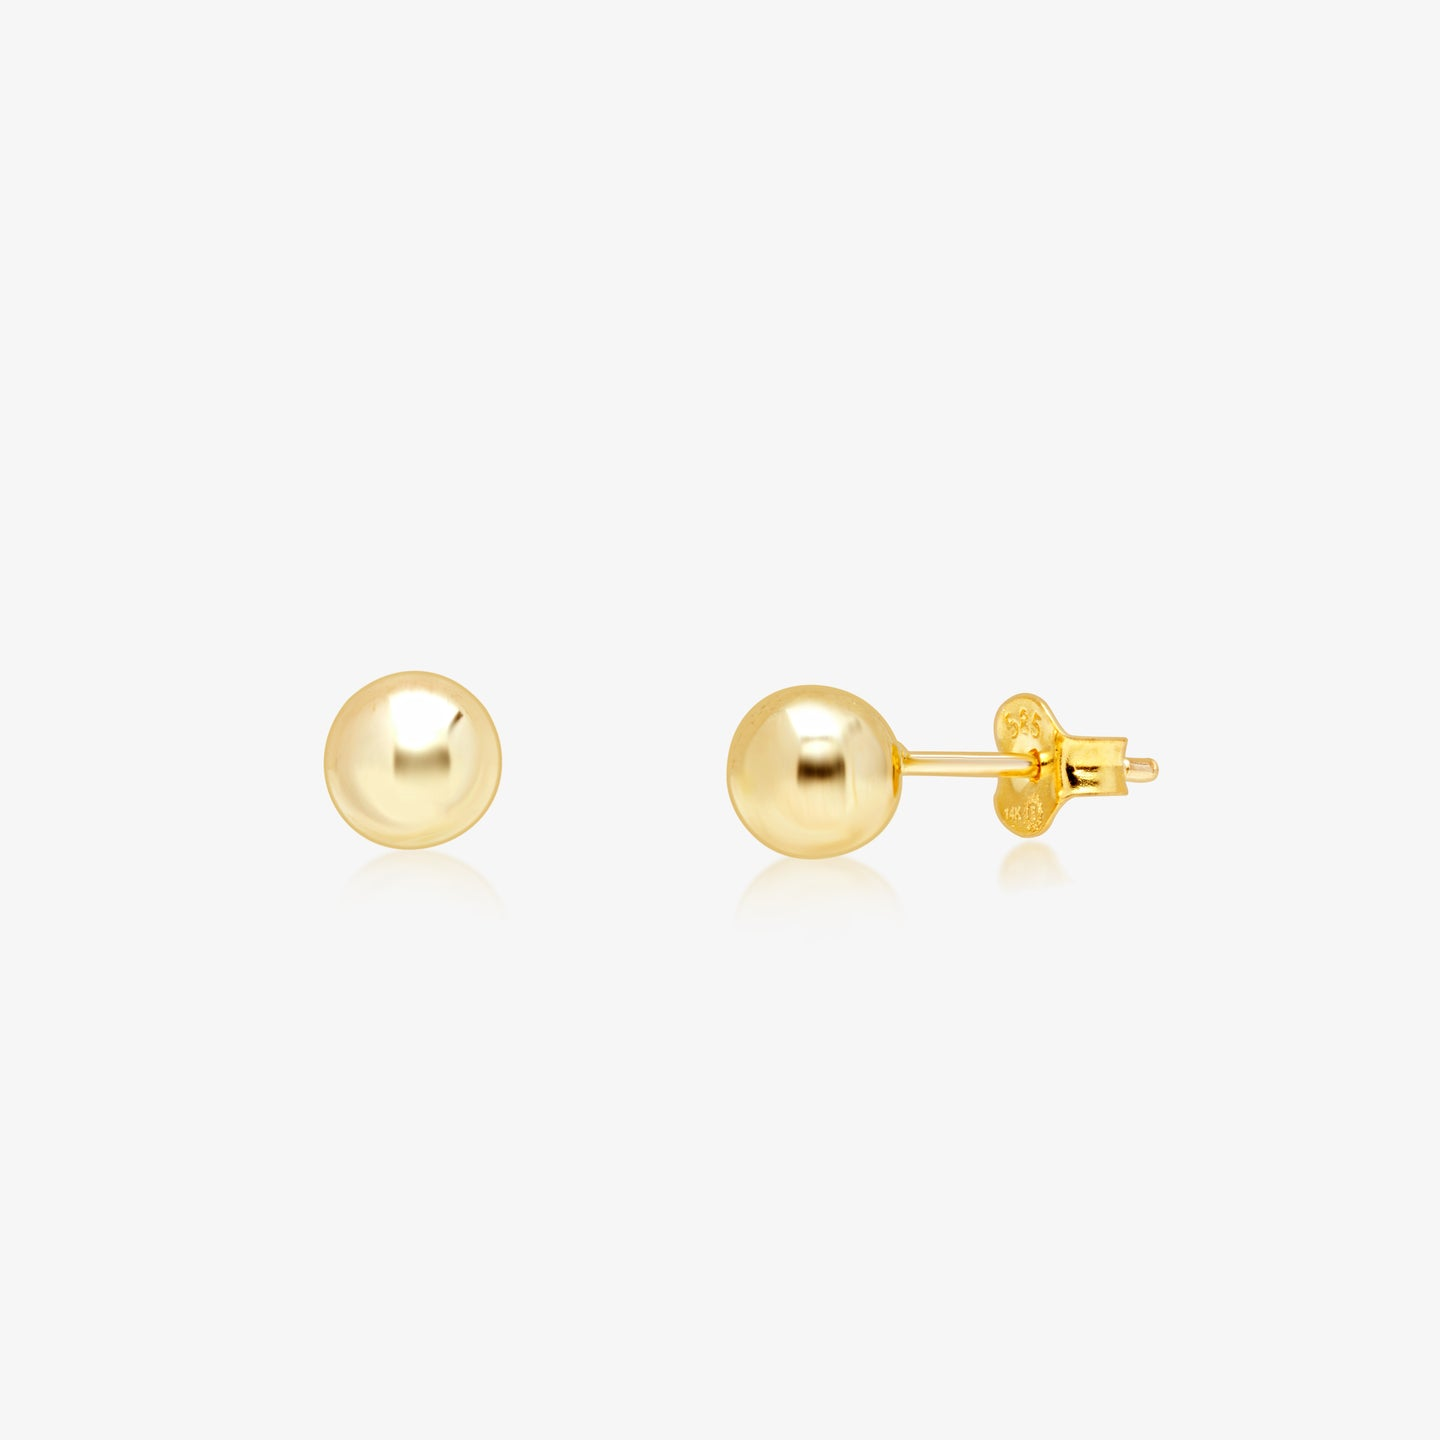 Lara - Gold Ball Stud Earrings - estellacollection